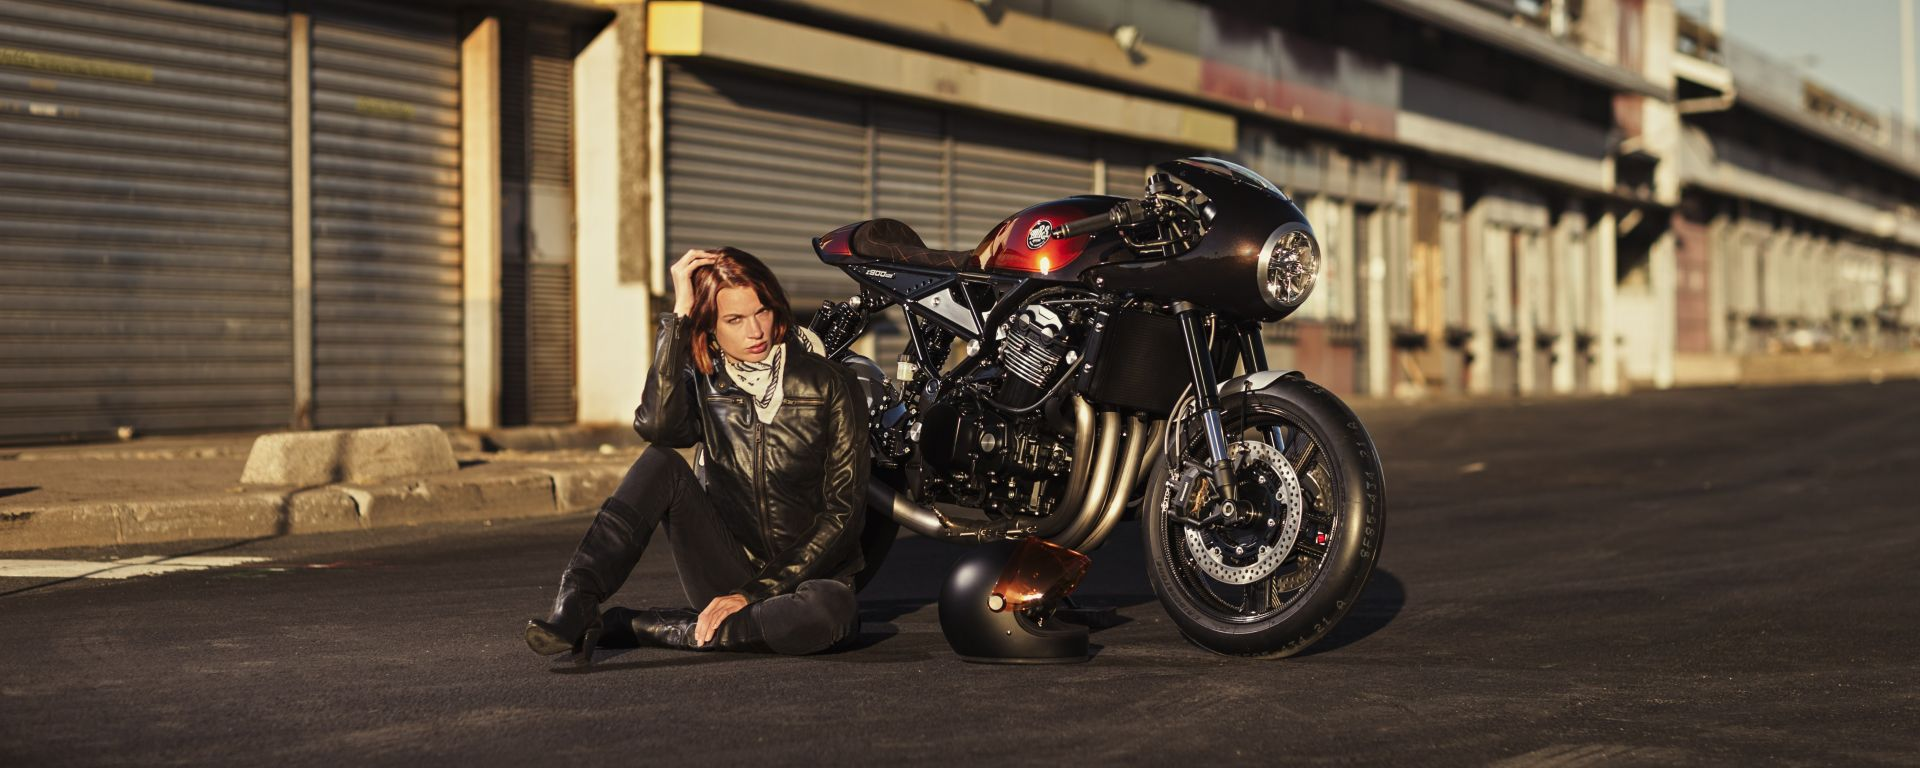 Kawasaki Z900 RS by MRS: Café Racer in salsa francese